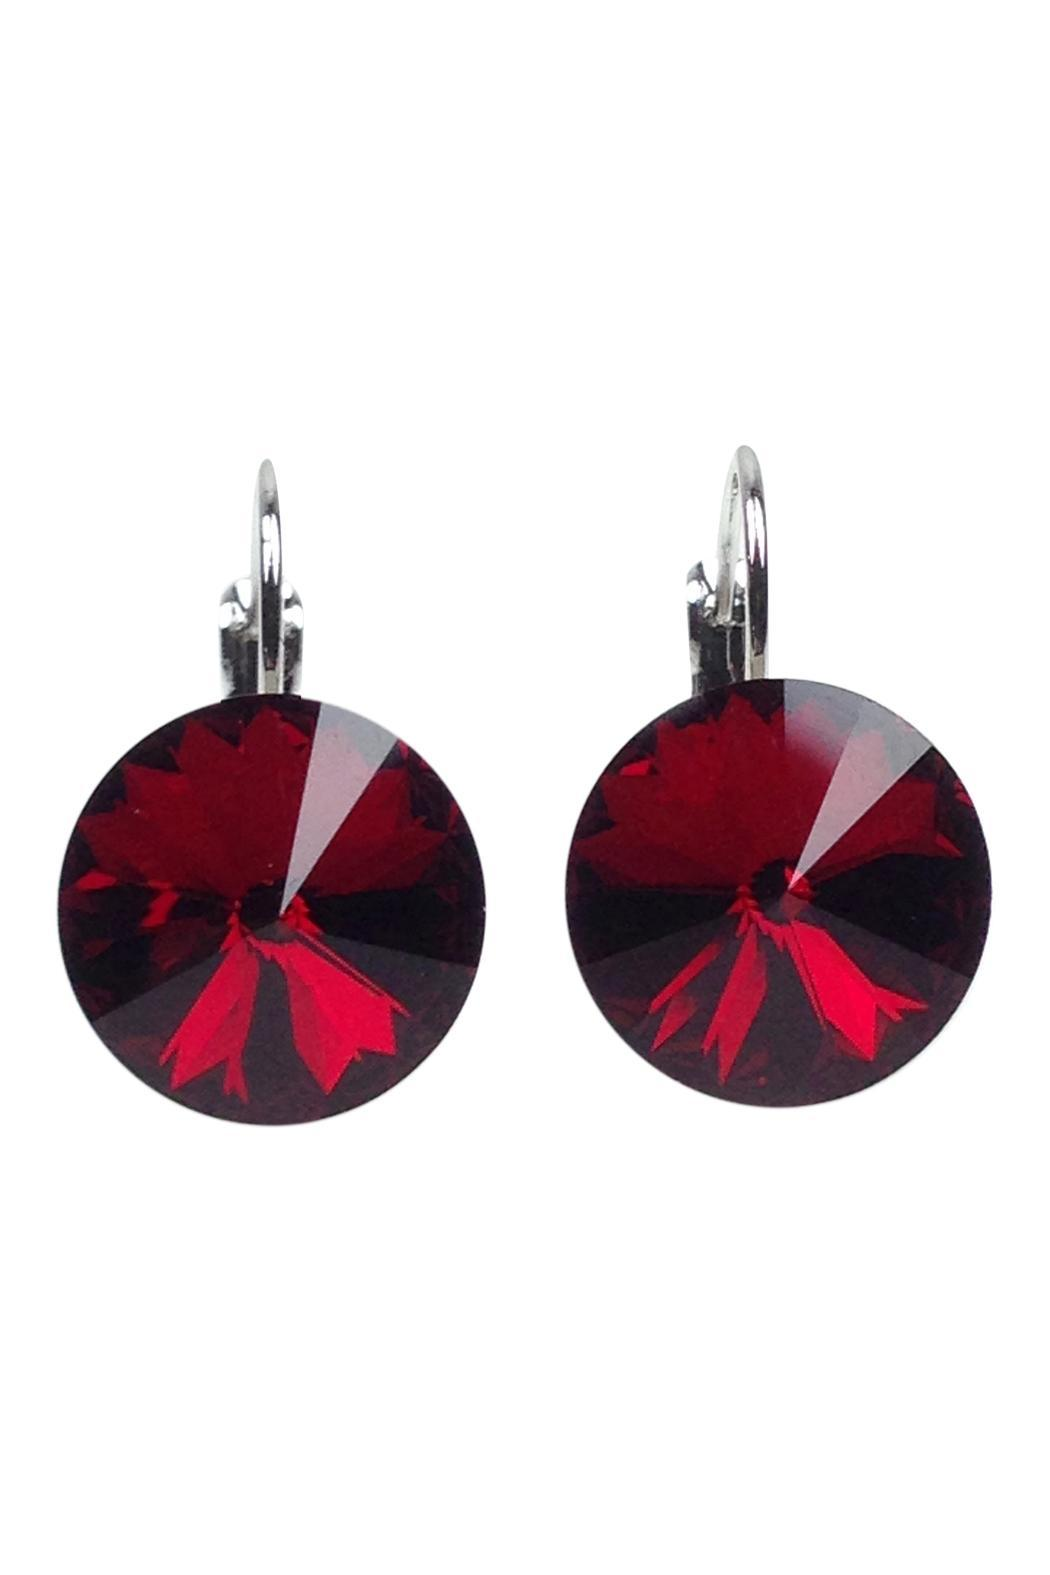 swarovski crystal earrings minuet chandelier red keepsake